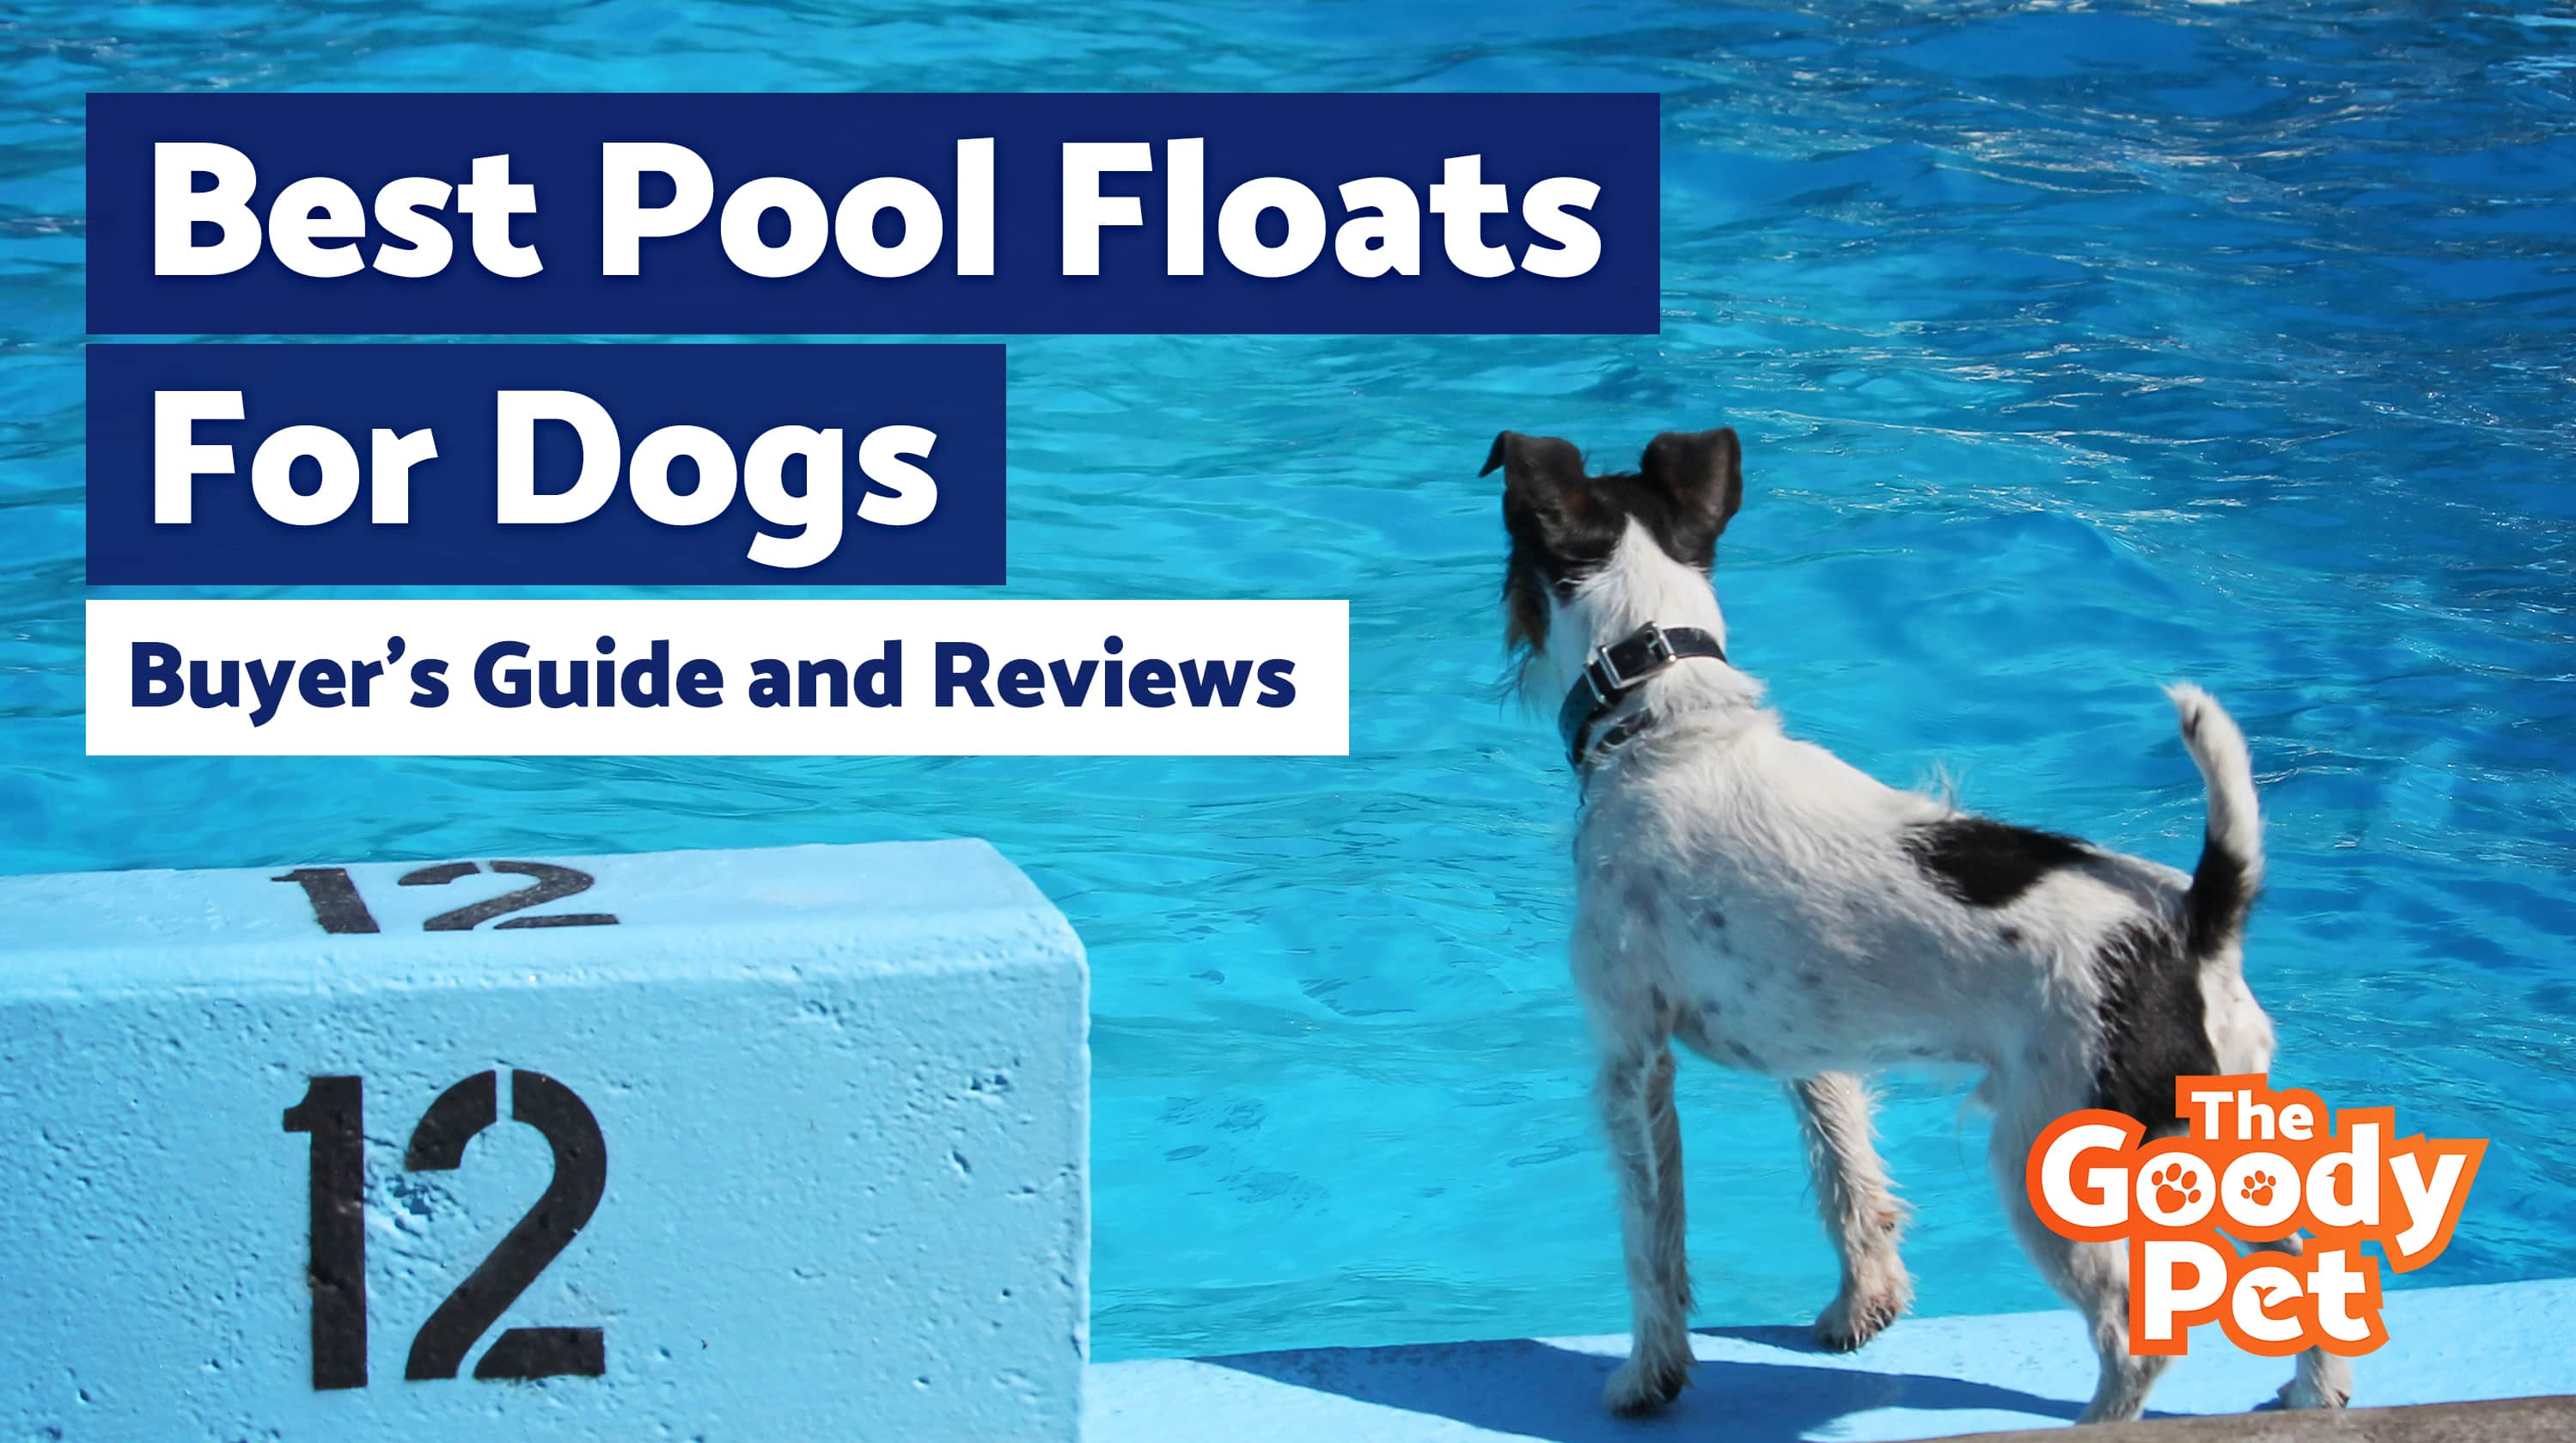 6 Best Pool Raft Floats For Dogs April 2019 Buyers Guide